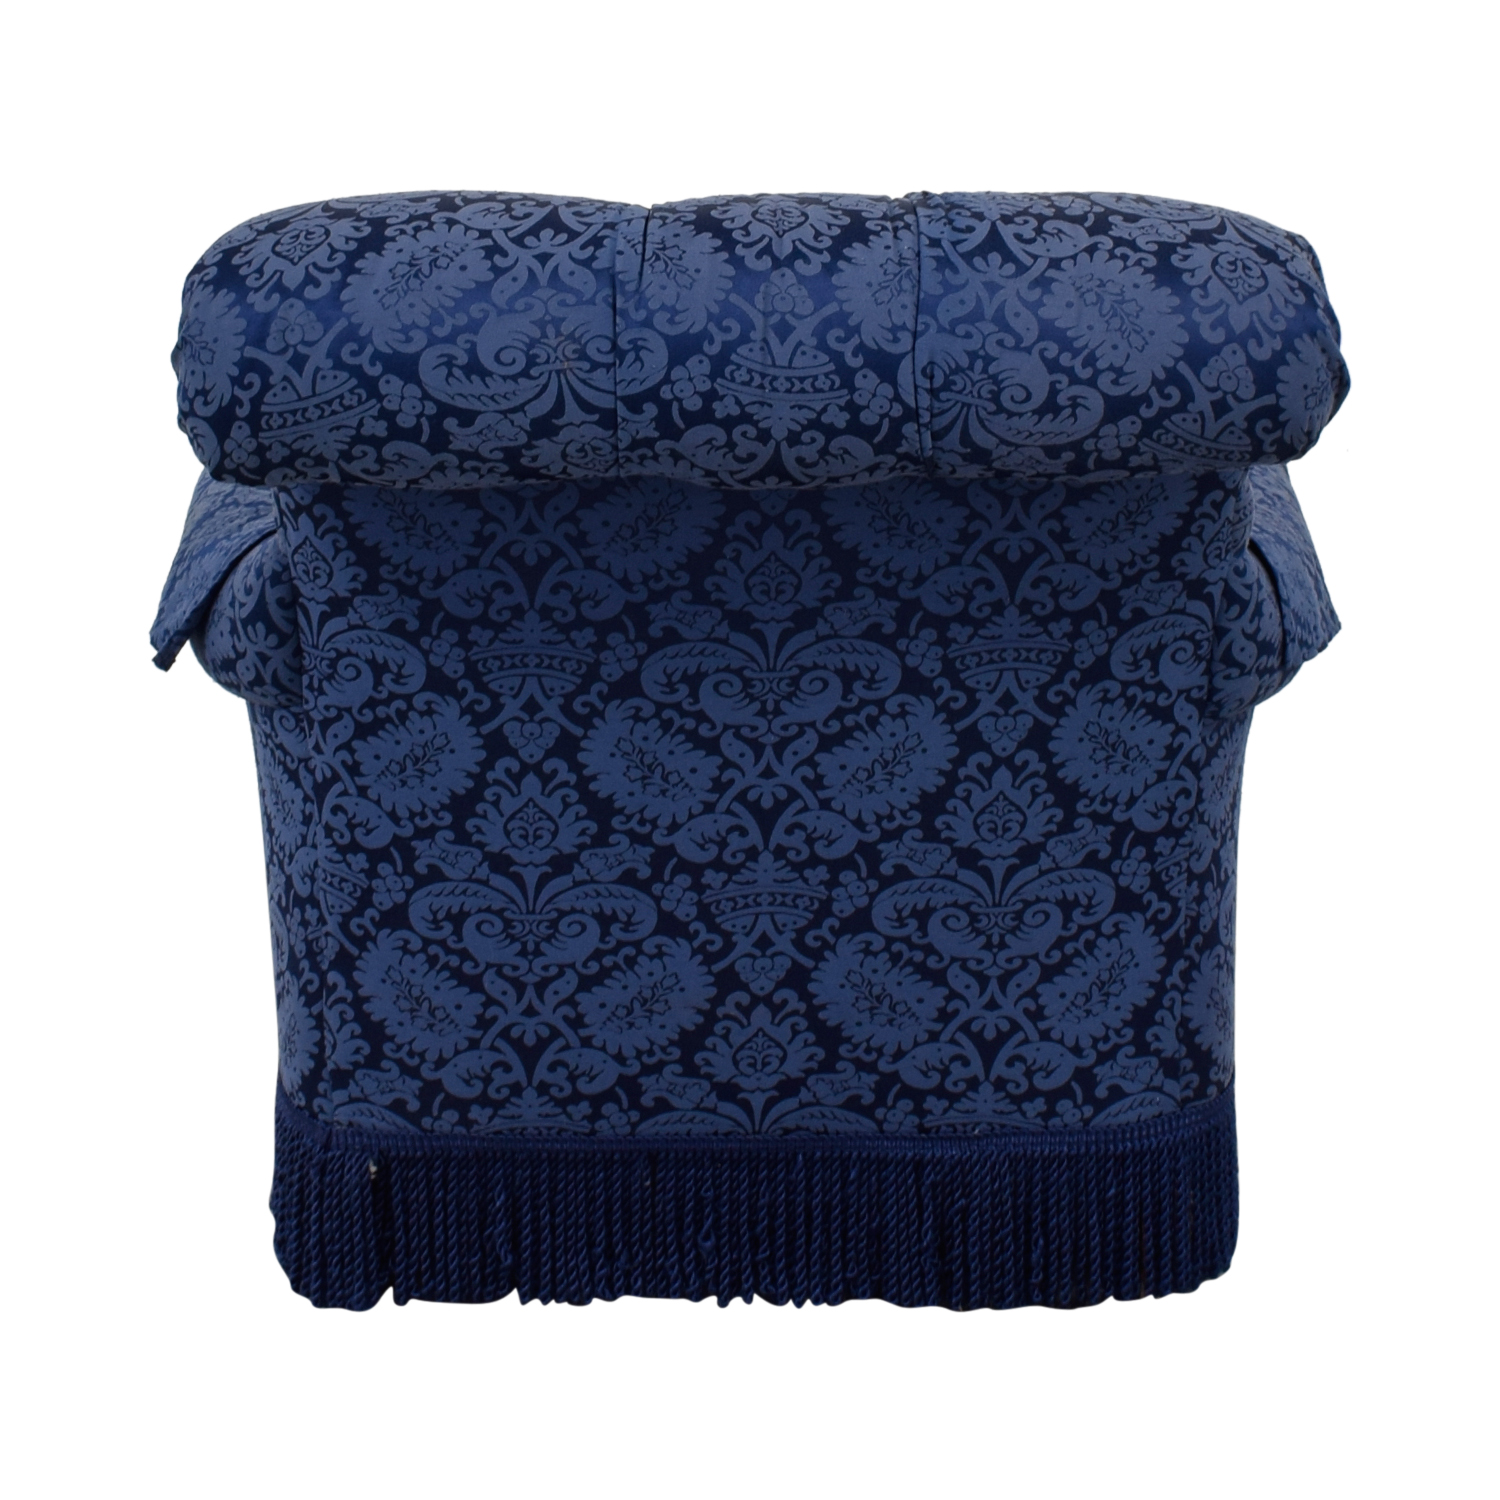 buy Ralph Lauren Ralph Lauren Blue Tufted Club Chair online